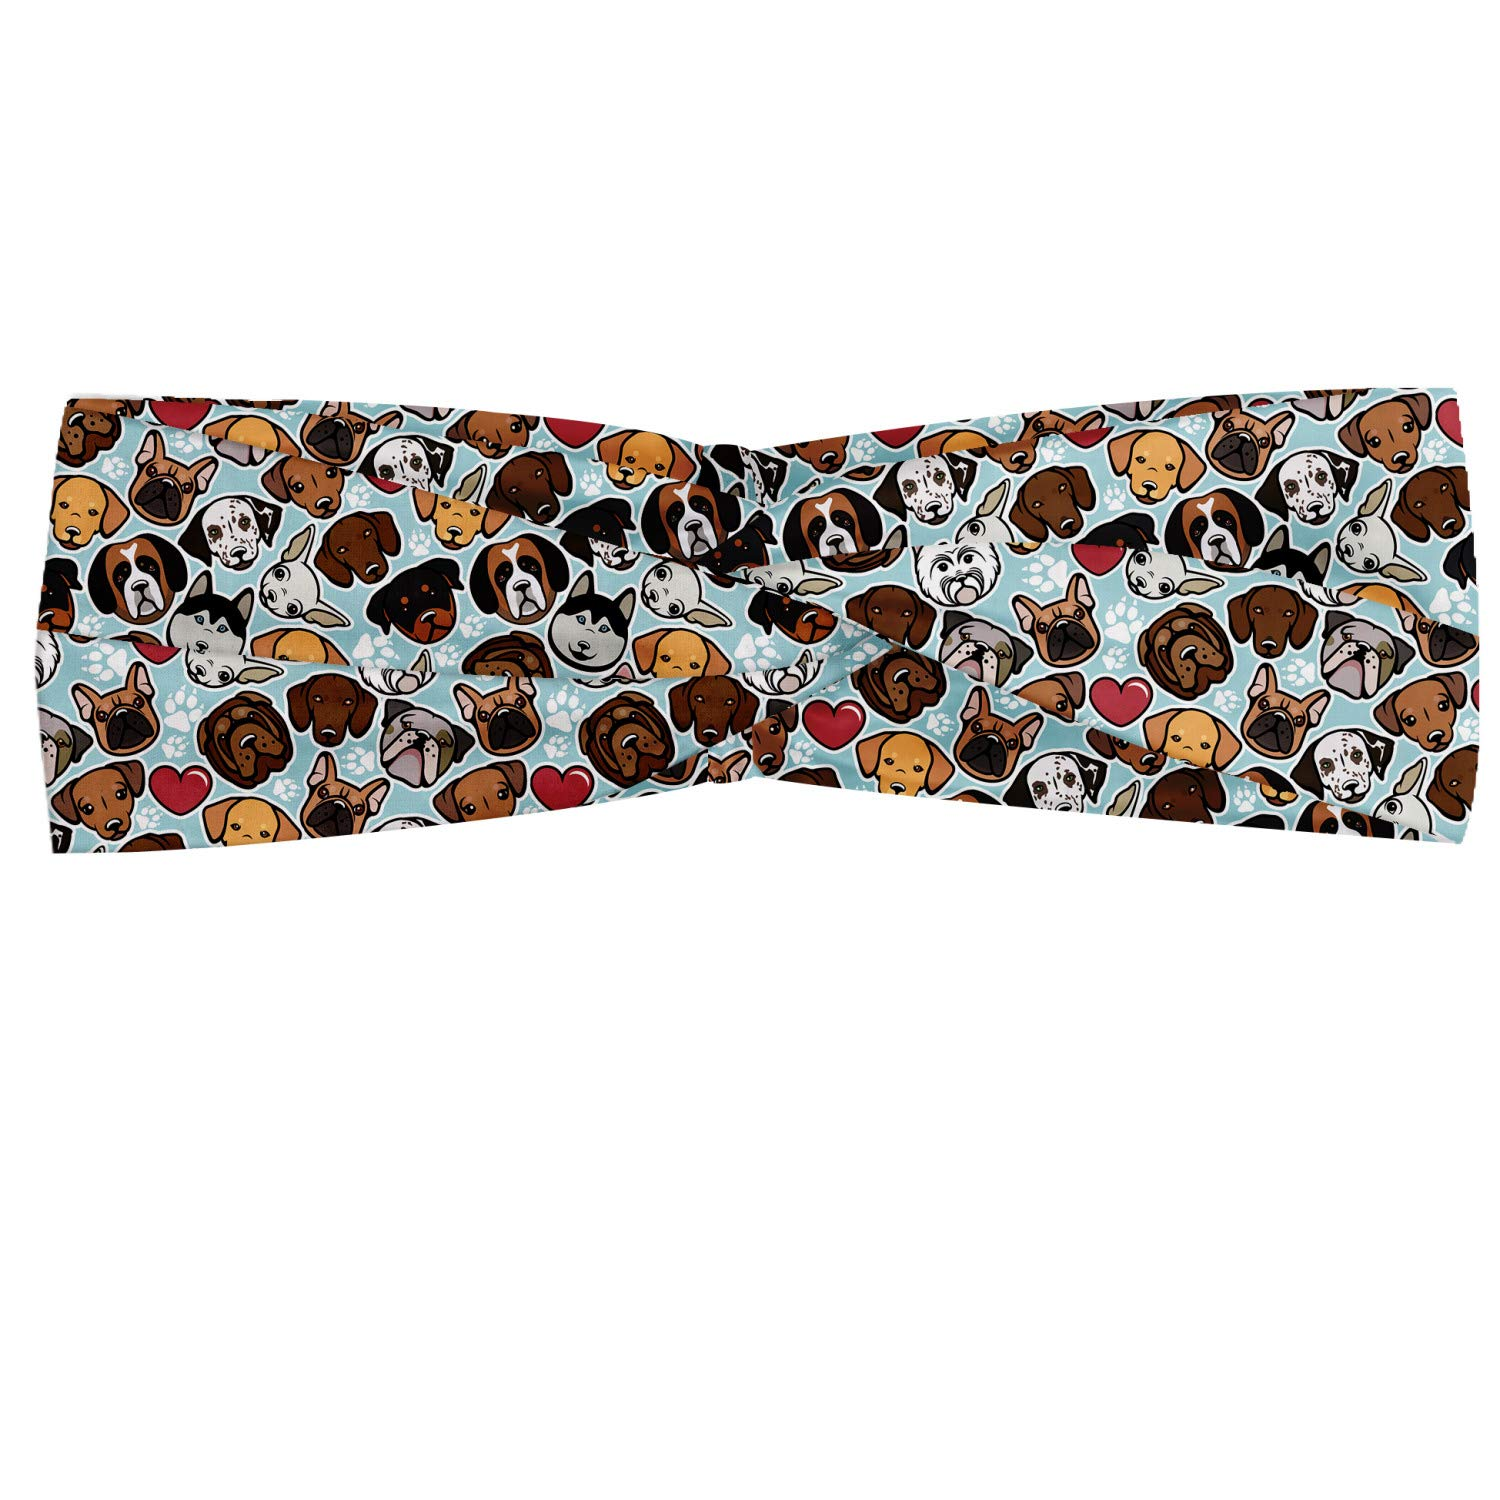 Ambesonne Dog Lover Headband, Canine Breeds Bulldog Chihuahua Siberians and Retriever Love Heart Paw Prints, Elastic and Soft Women's Bandana for Sports and Everyday Use, Multicolor